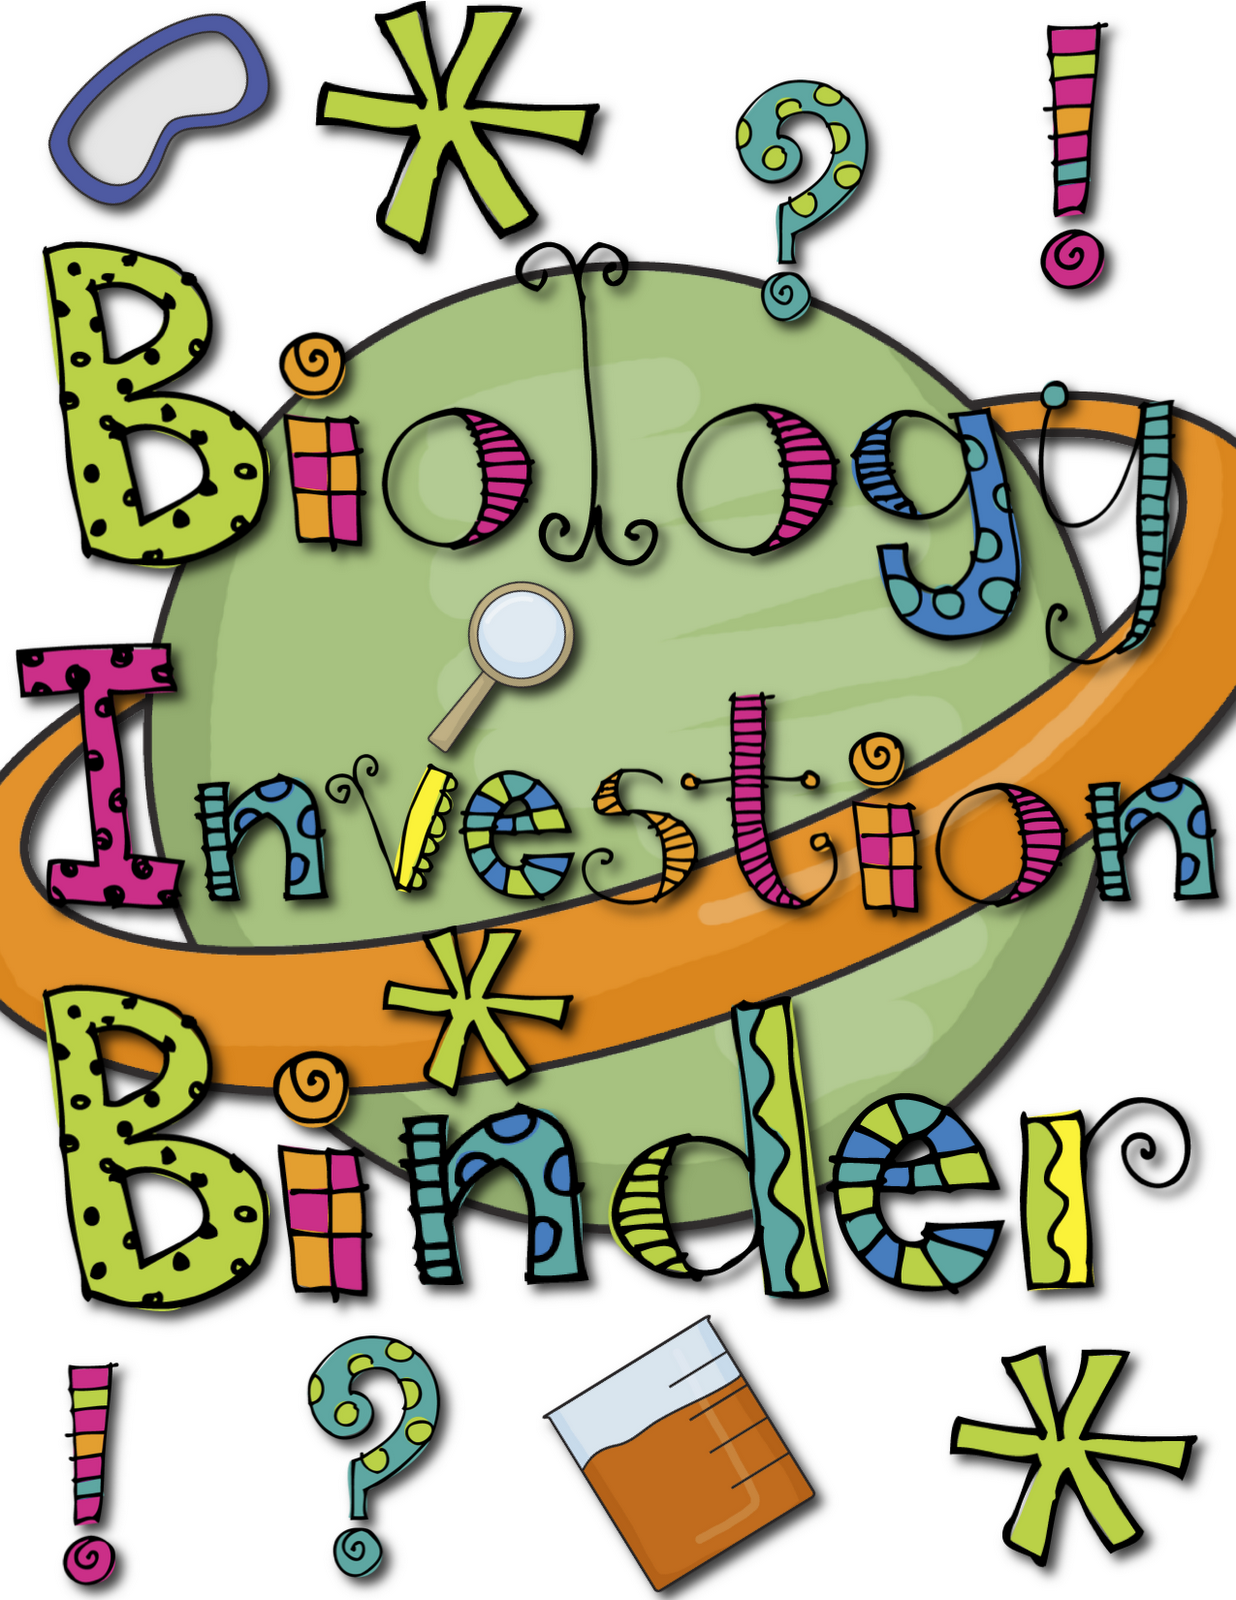 Incep imagine ex co. Biology clipart biology cover page